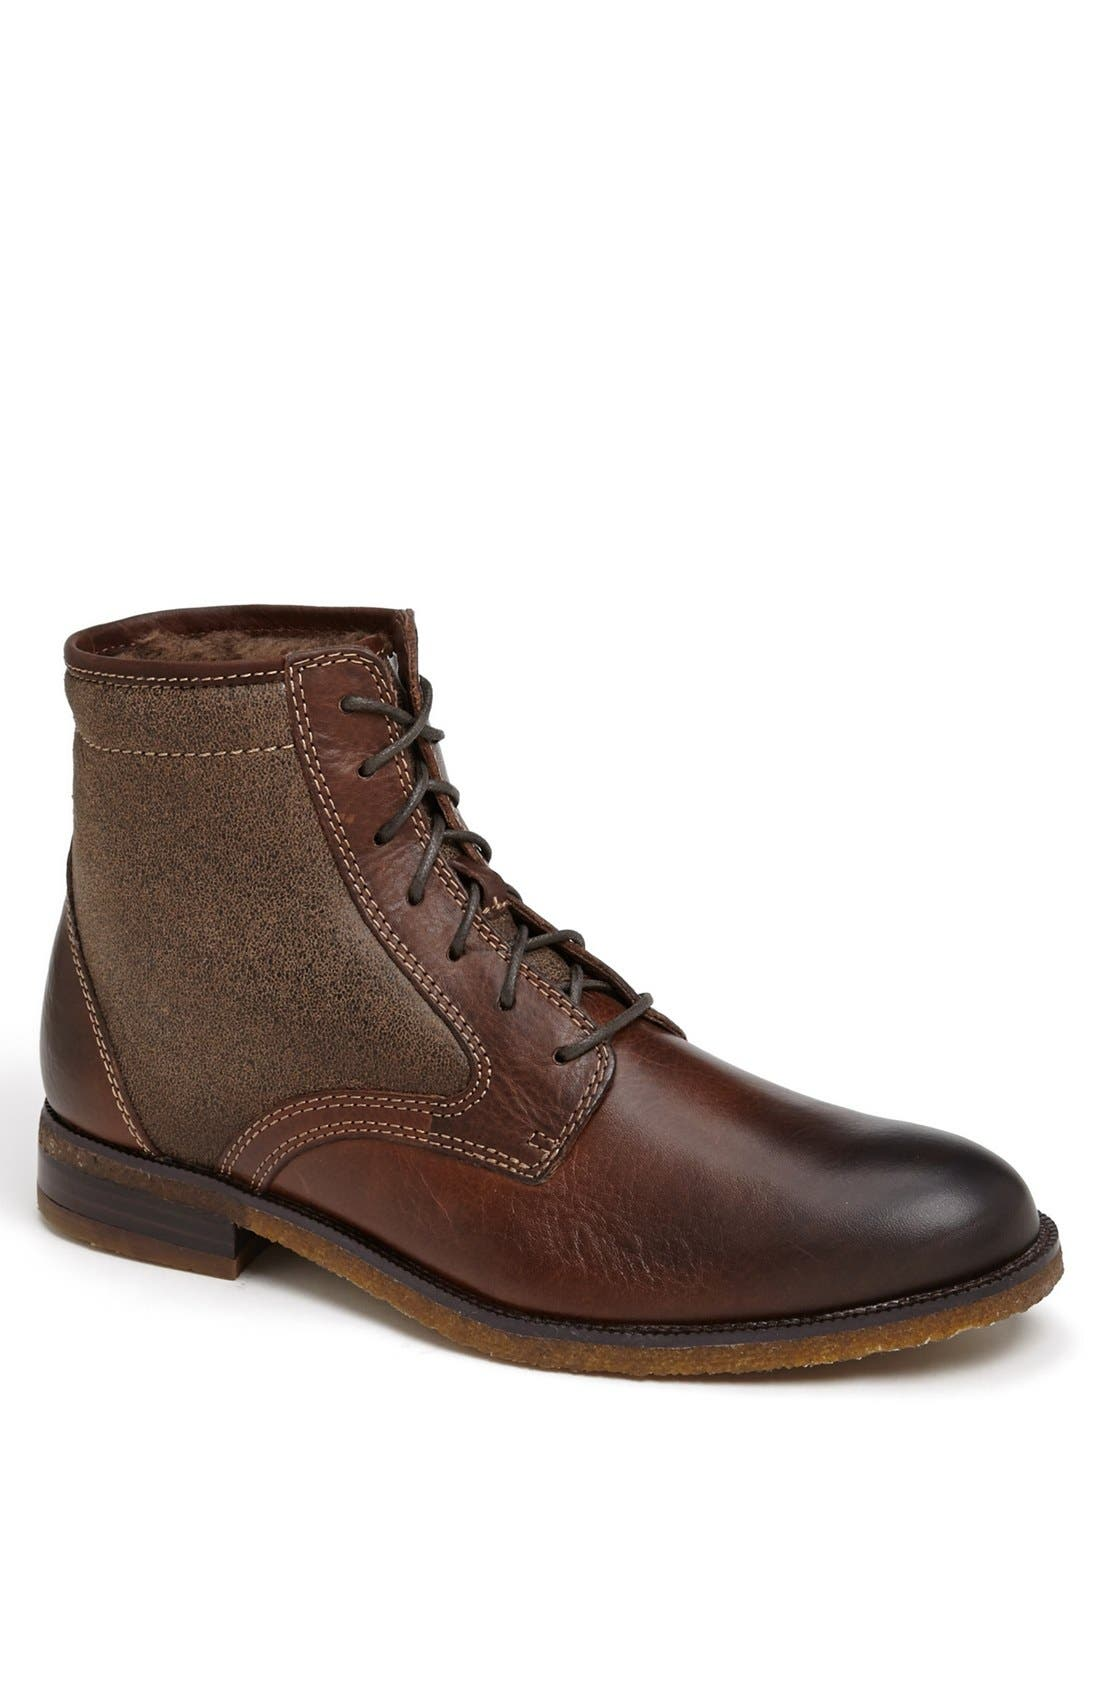 Main Image - J&M 1850 'Burchfield' Boot (Online Only)